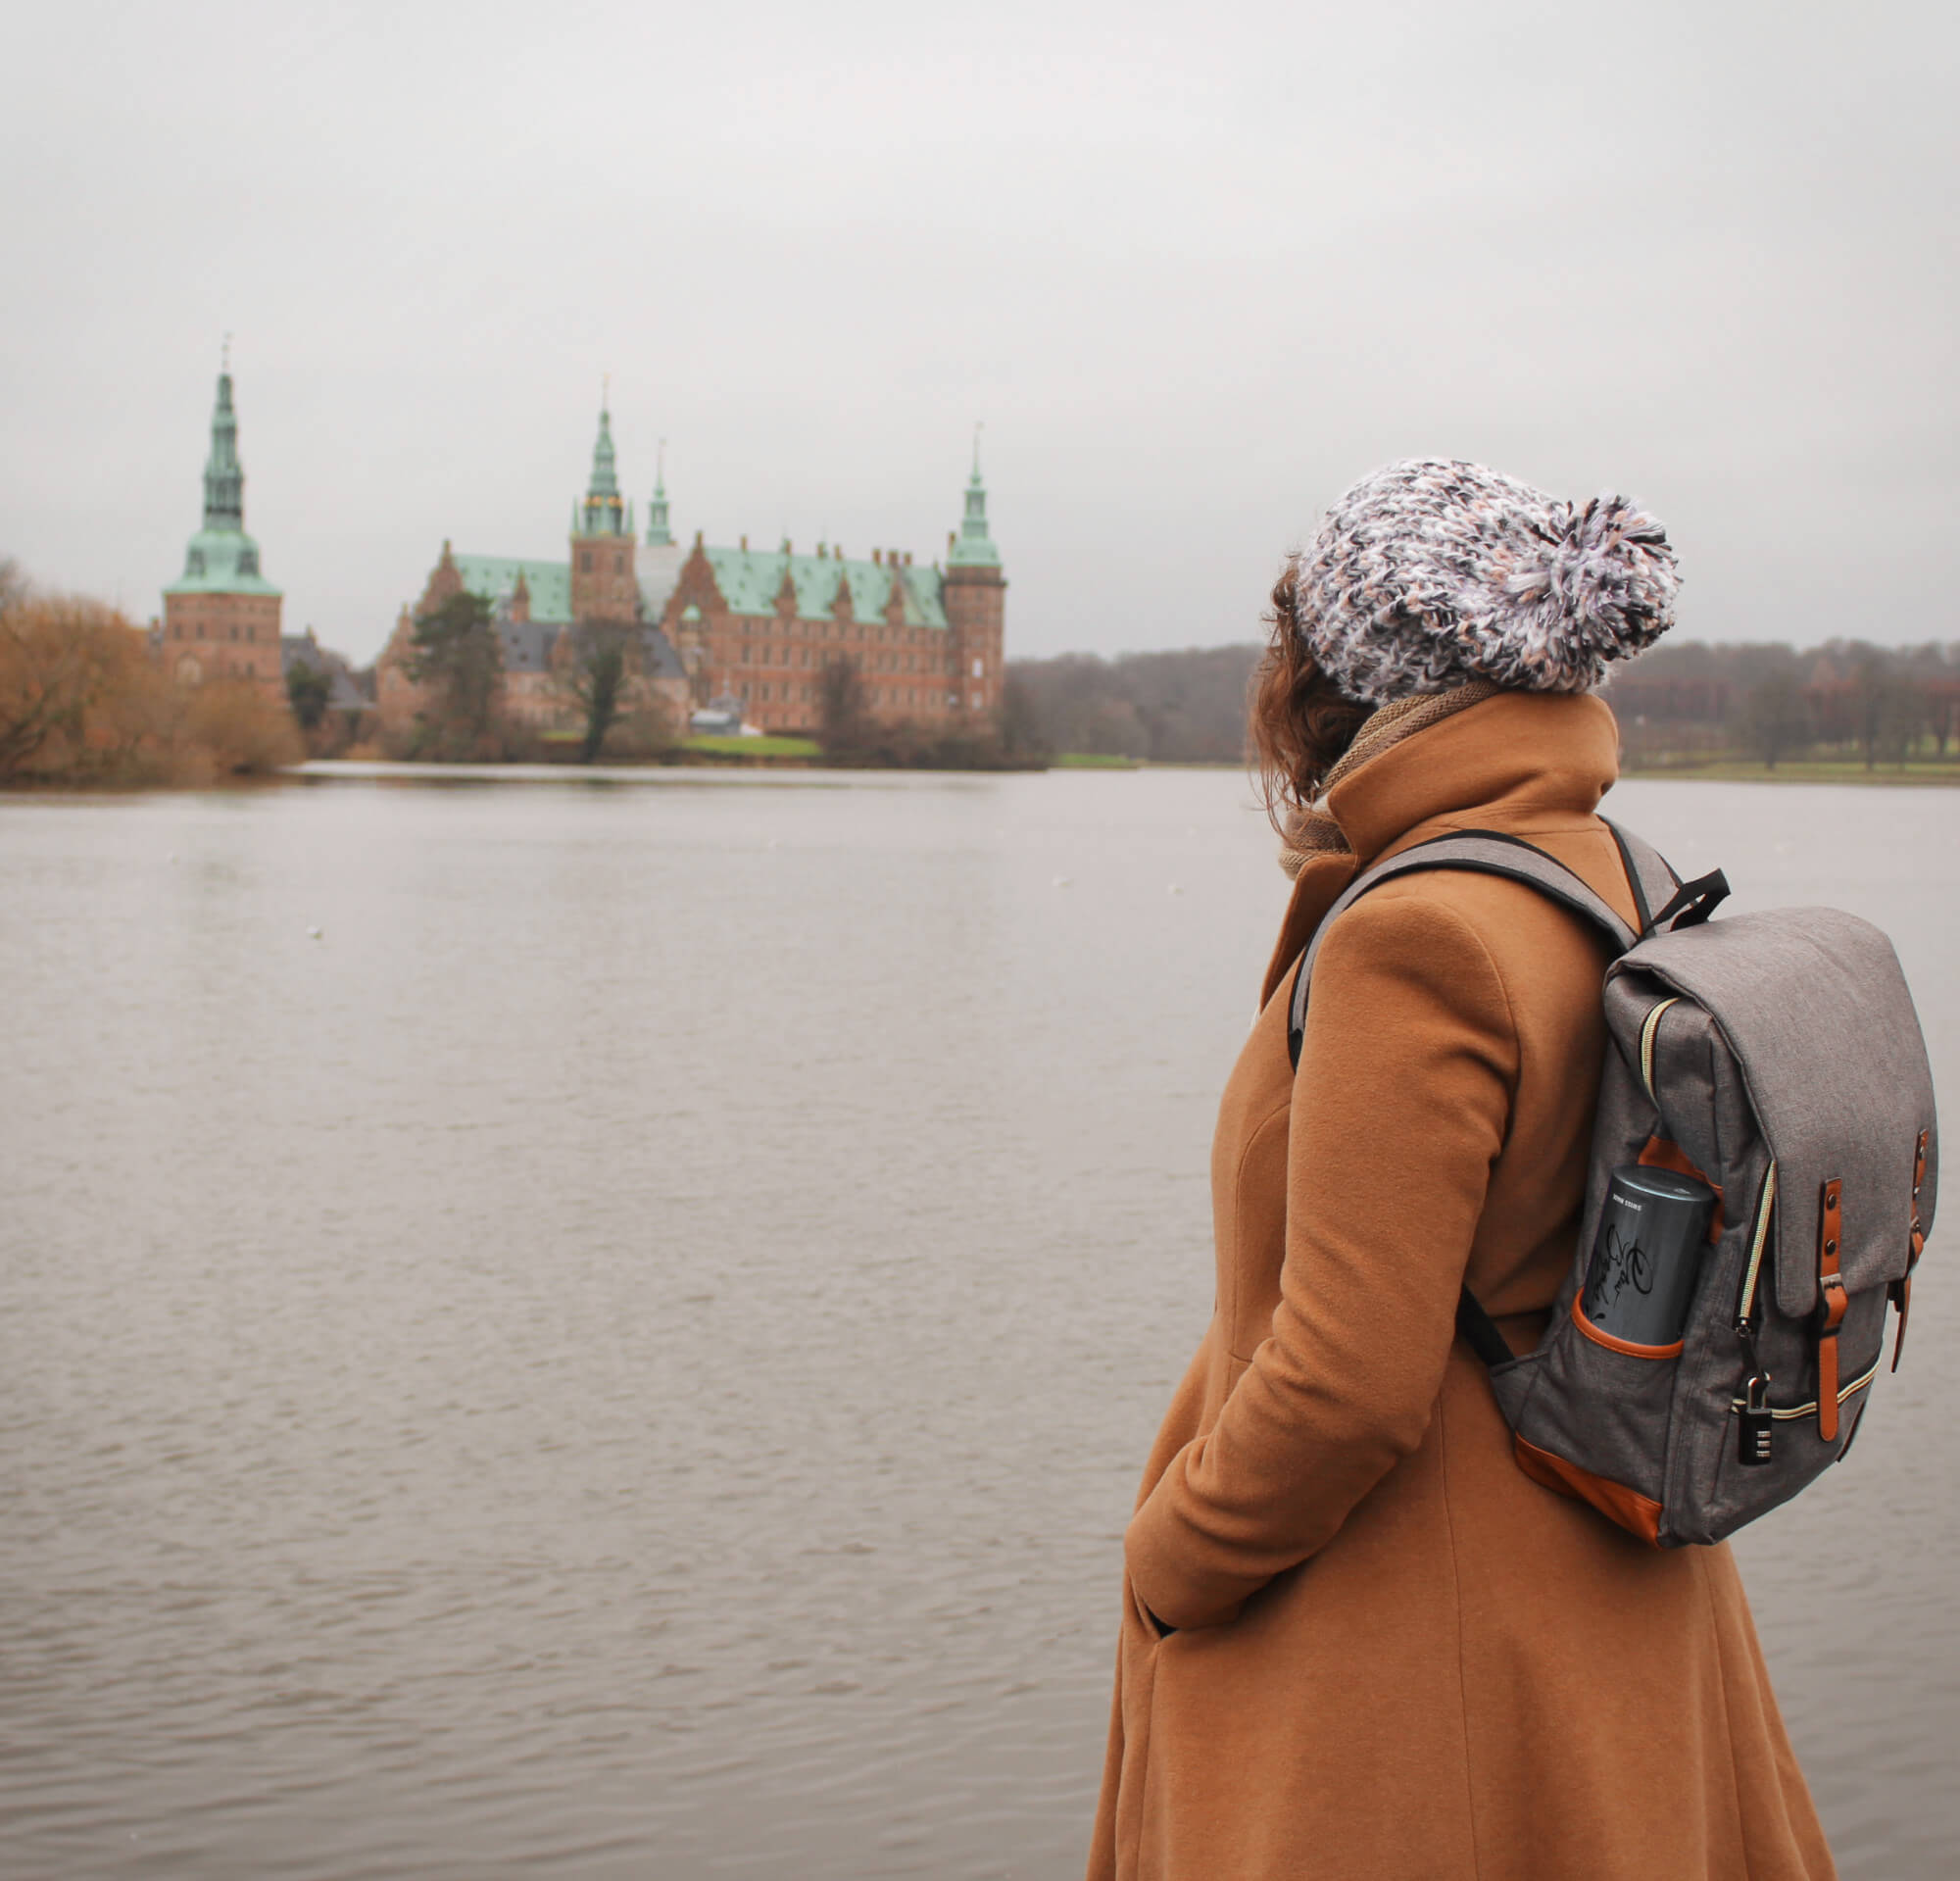 Gazing at fairytake Frederiksborg Castle outside of Copenhagen, Denmark in the winter.